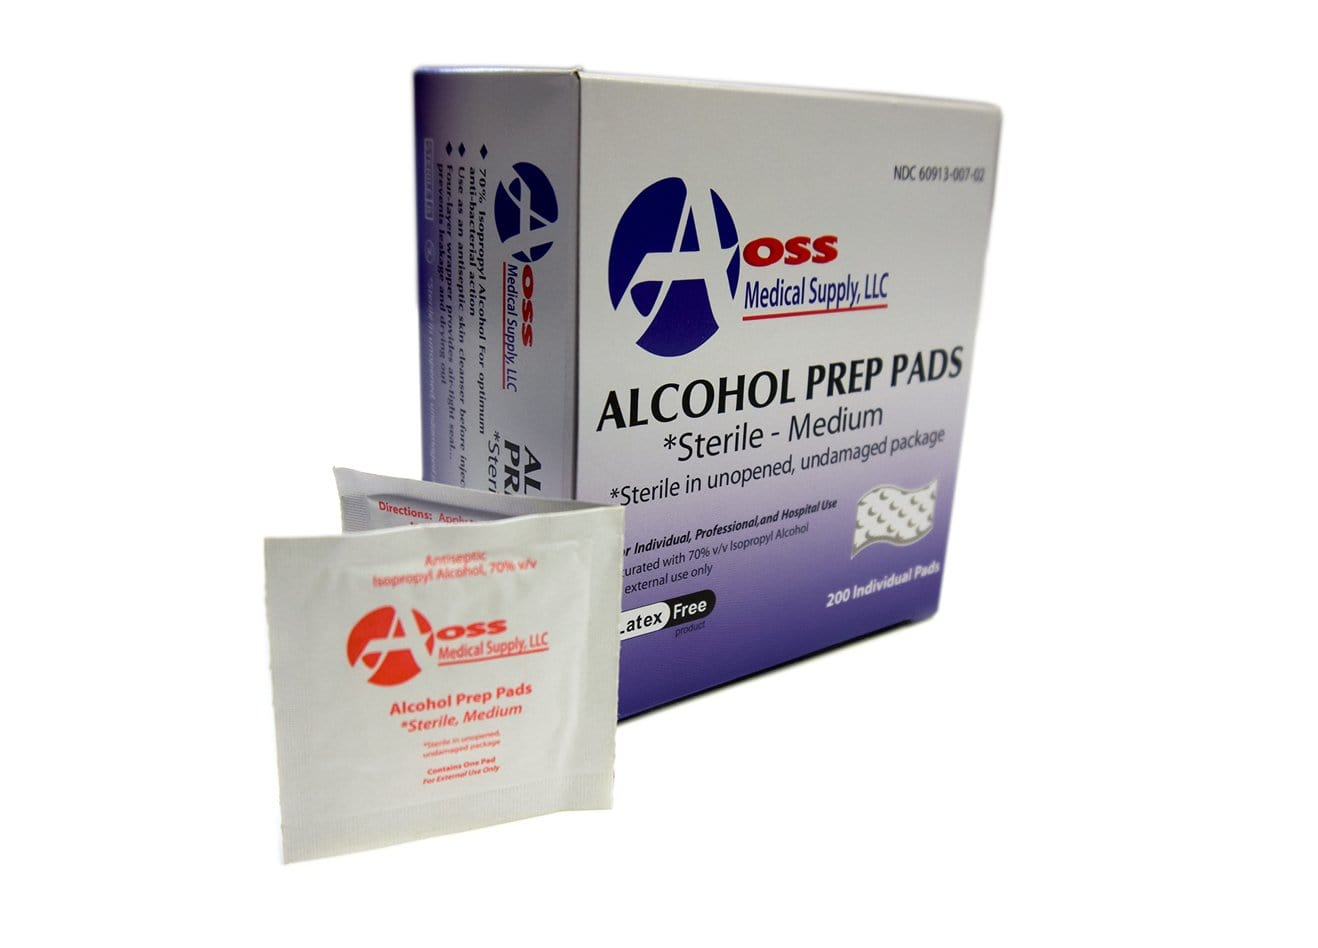 Alcohol Prep Pad AOSS Isopropyl Alcohol, 70% Individual Packet Medium Sterile